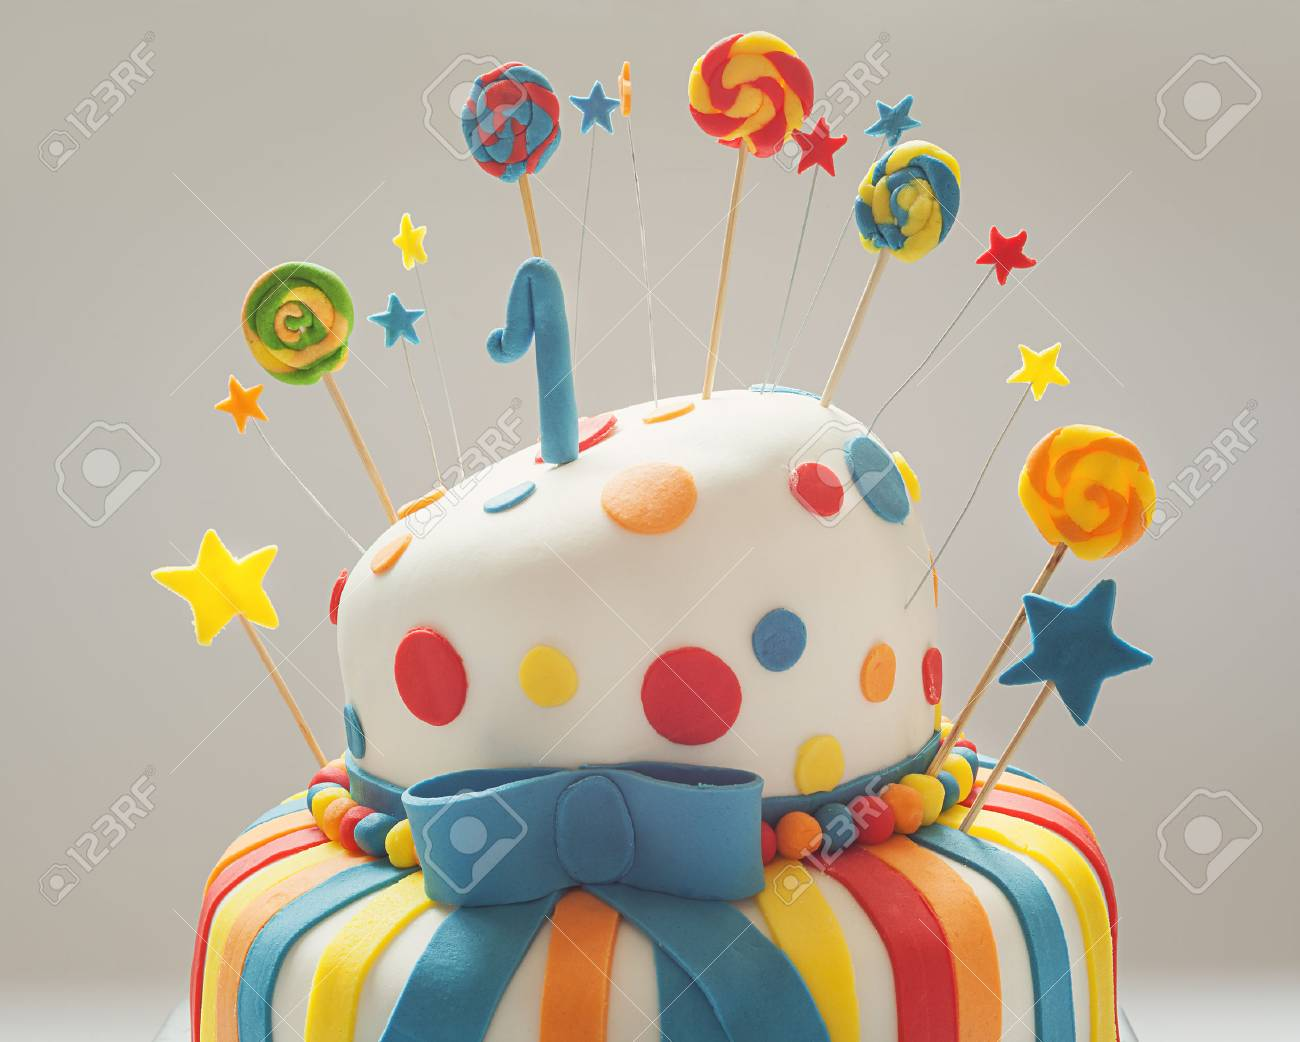 Enjoyable Funny Birthday Cake With Number One On Top Sweet Colorful Funny Birthday Cards Online Barepcheapnameinfo